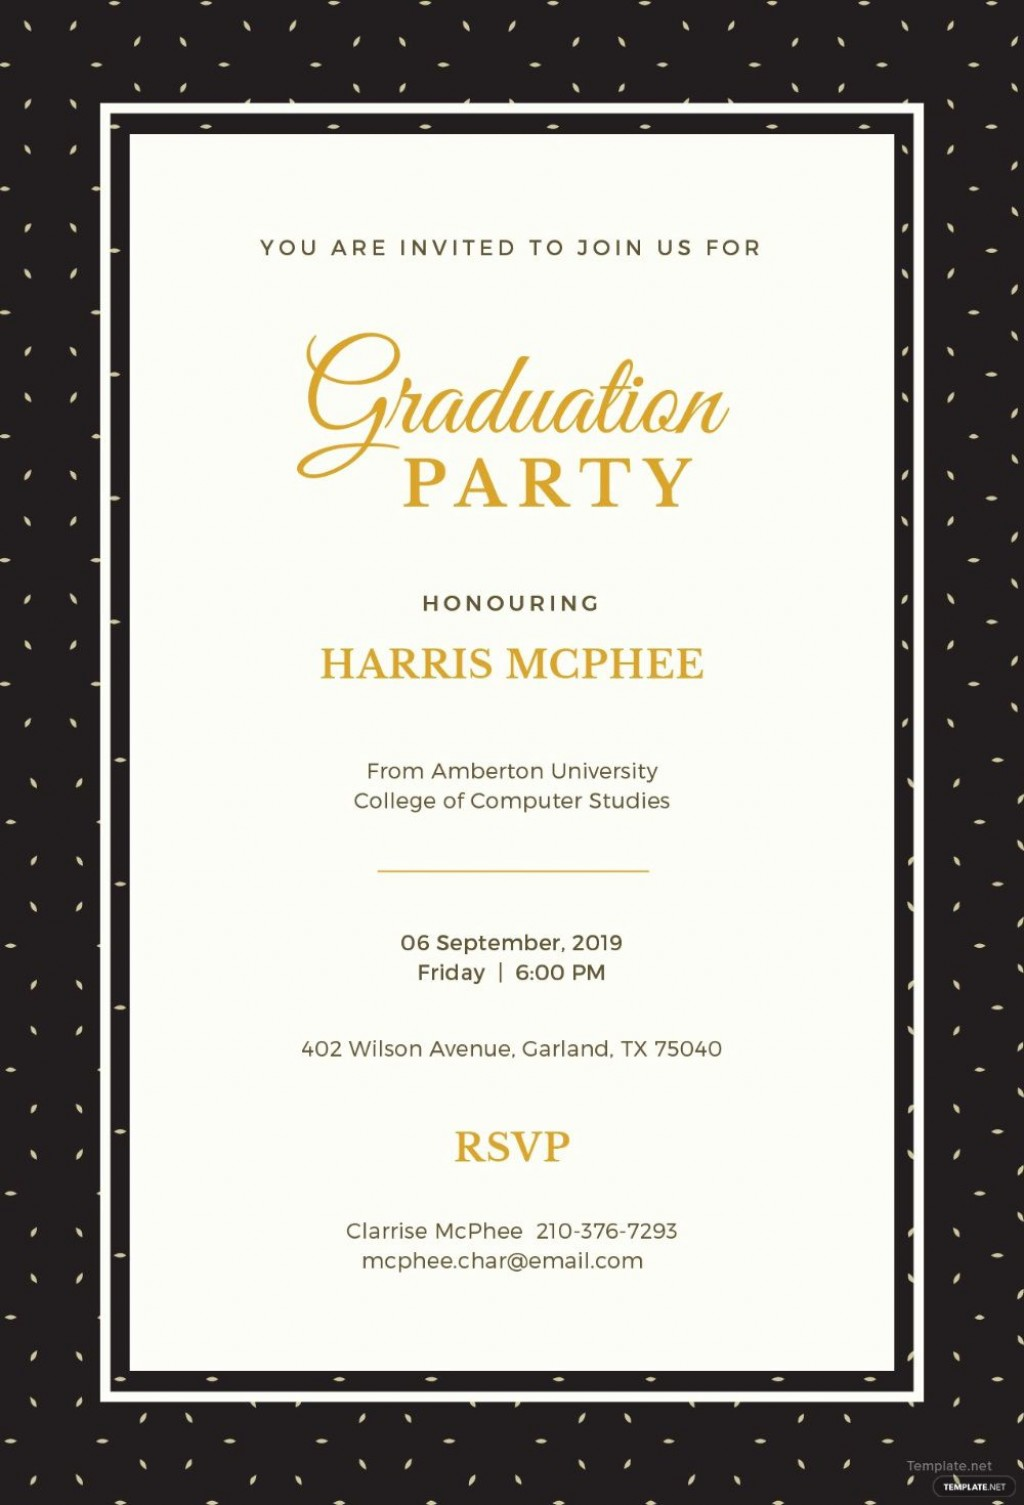 003 Exceptional Free Graduation Announcement Template High Resolution  Templates For Word MicrosoftLarge